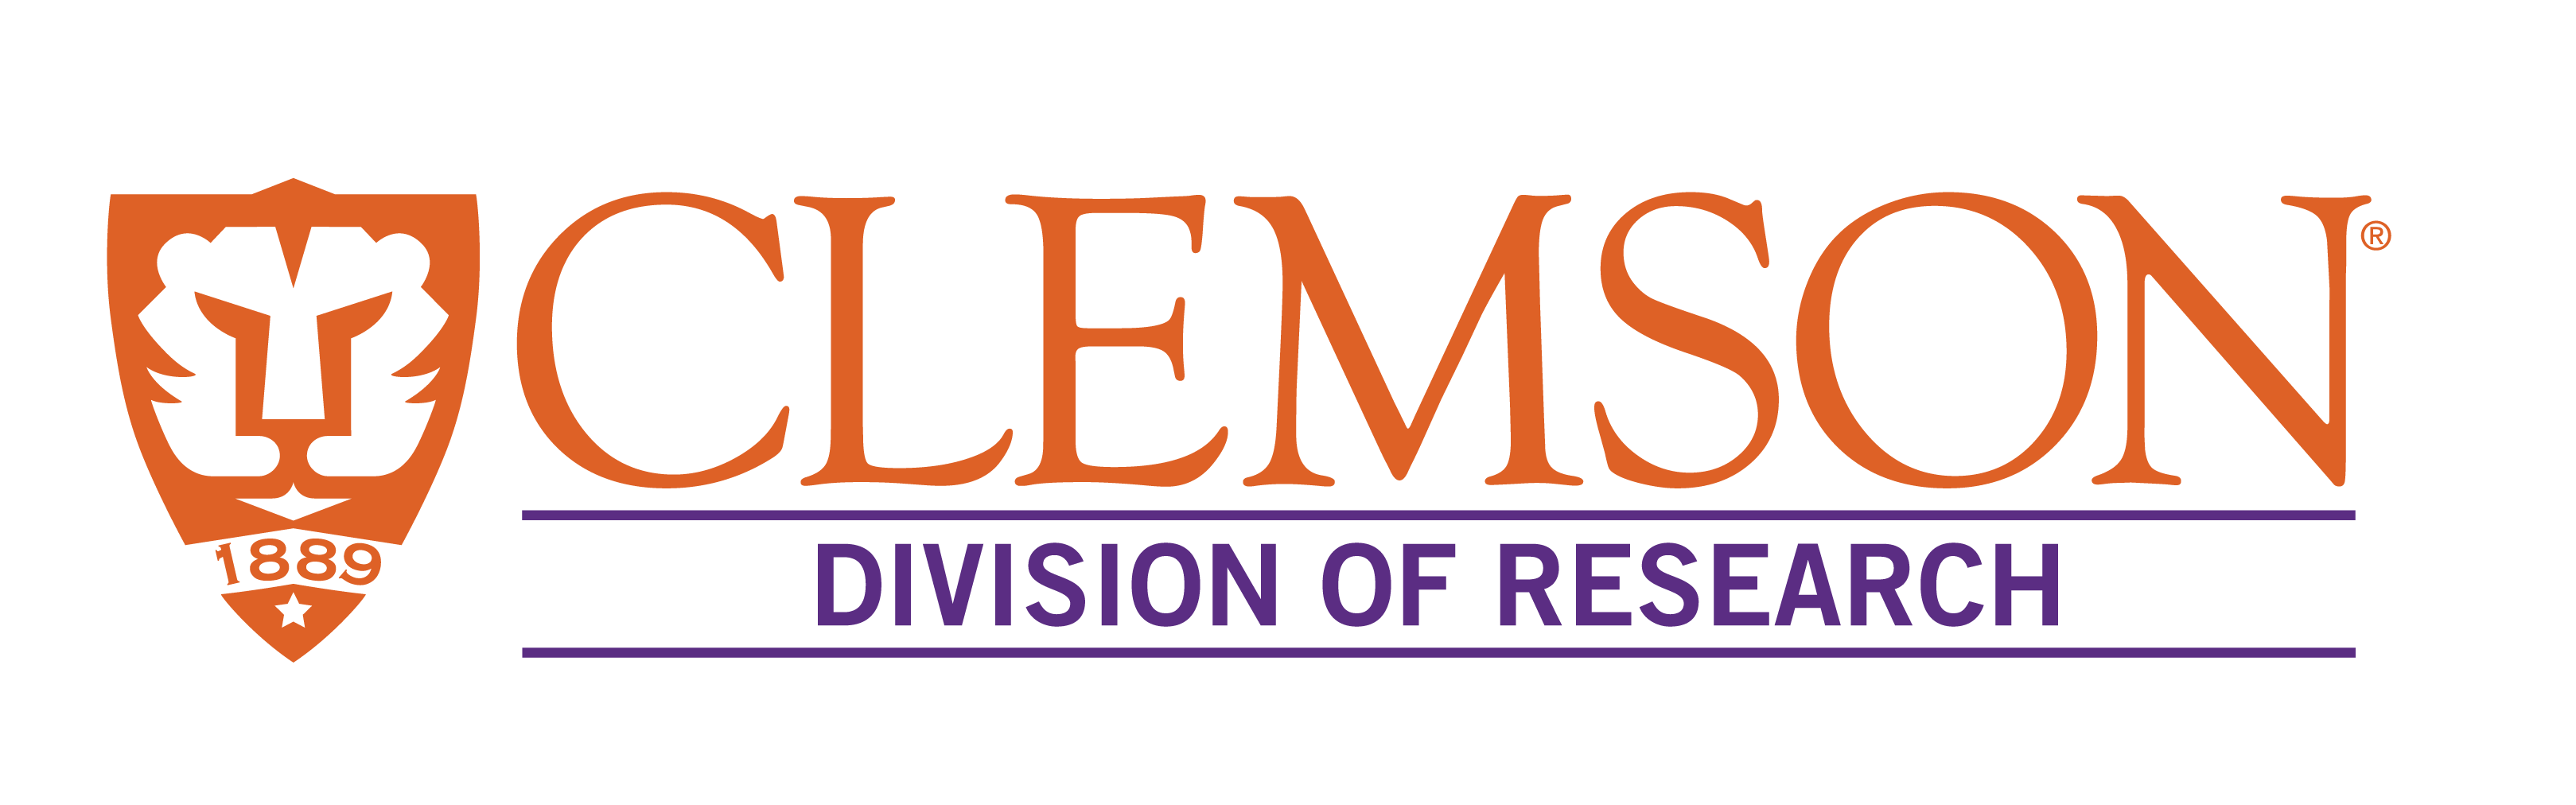 Division of Research Logo